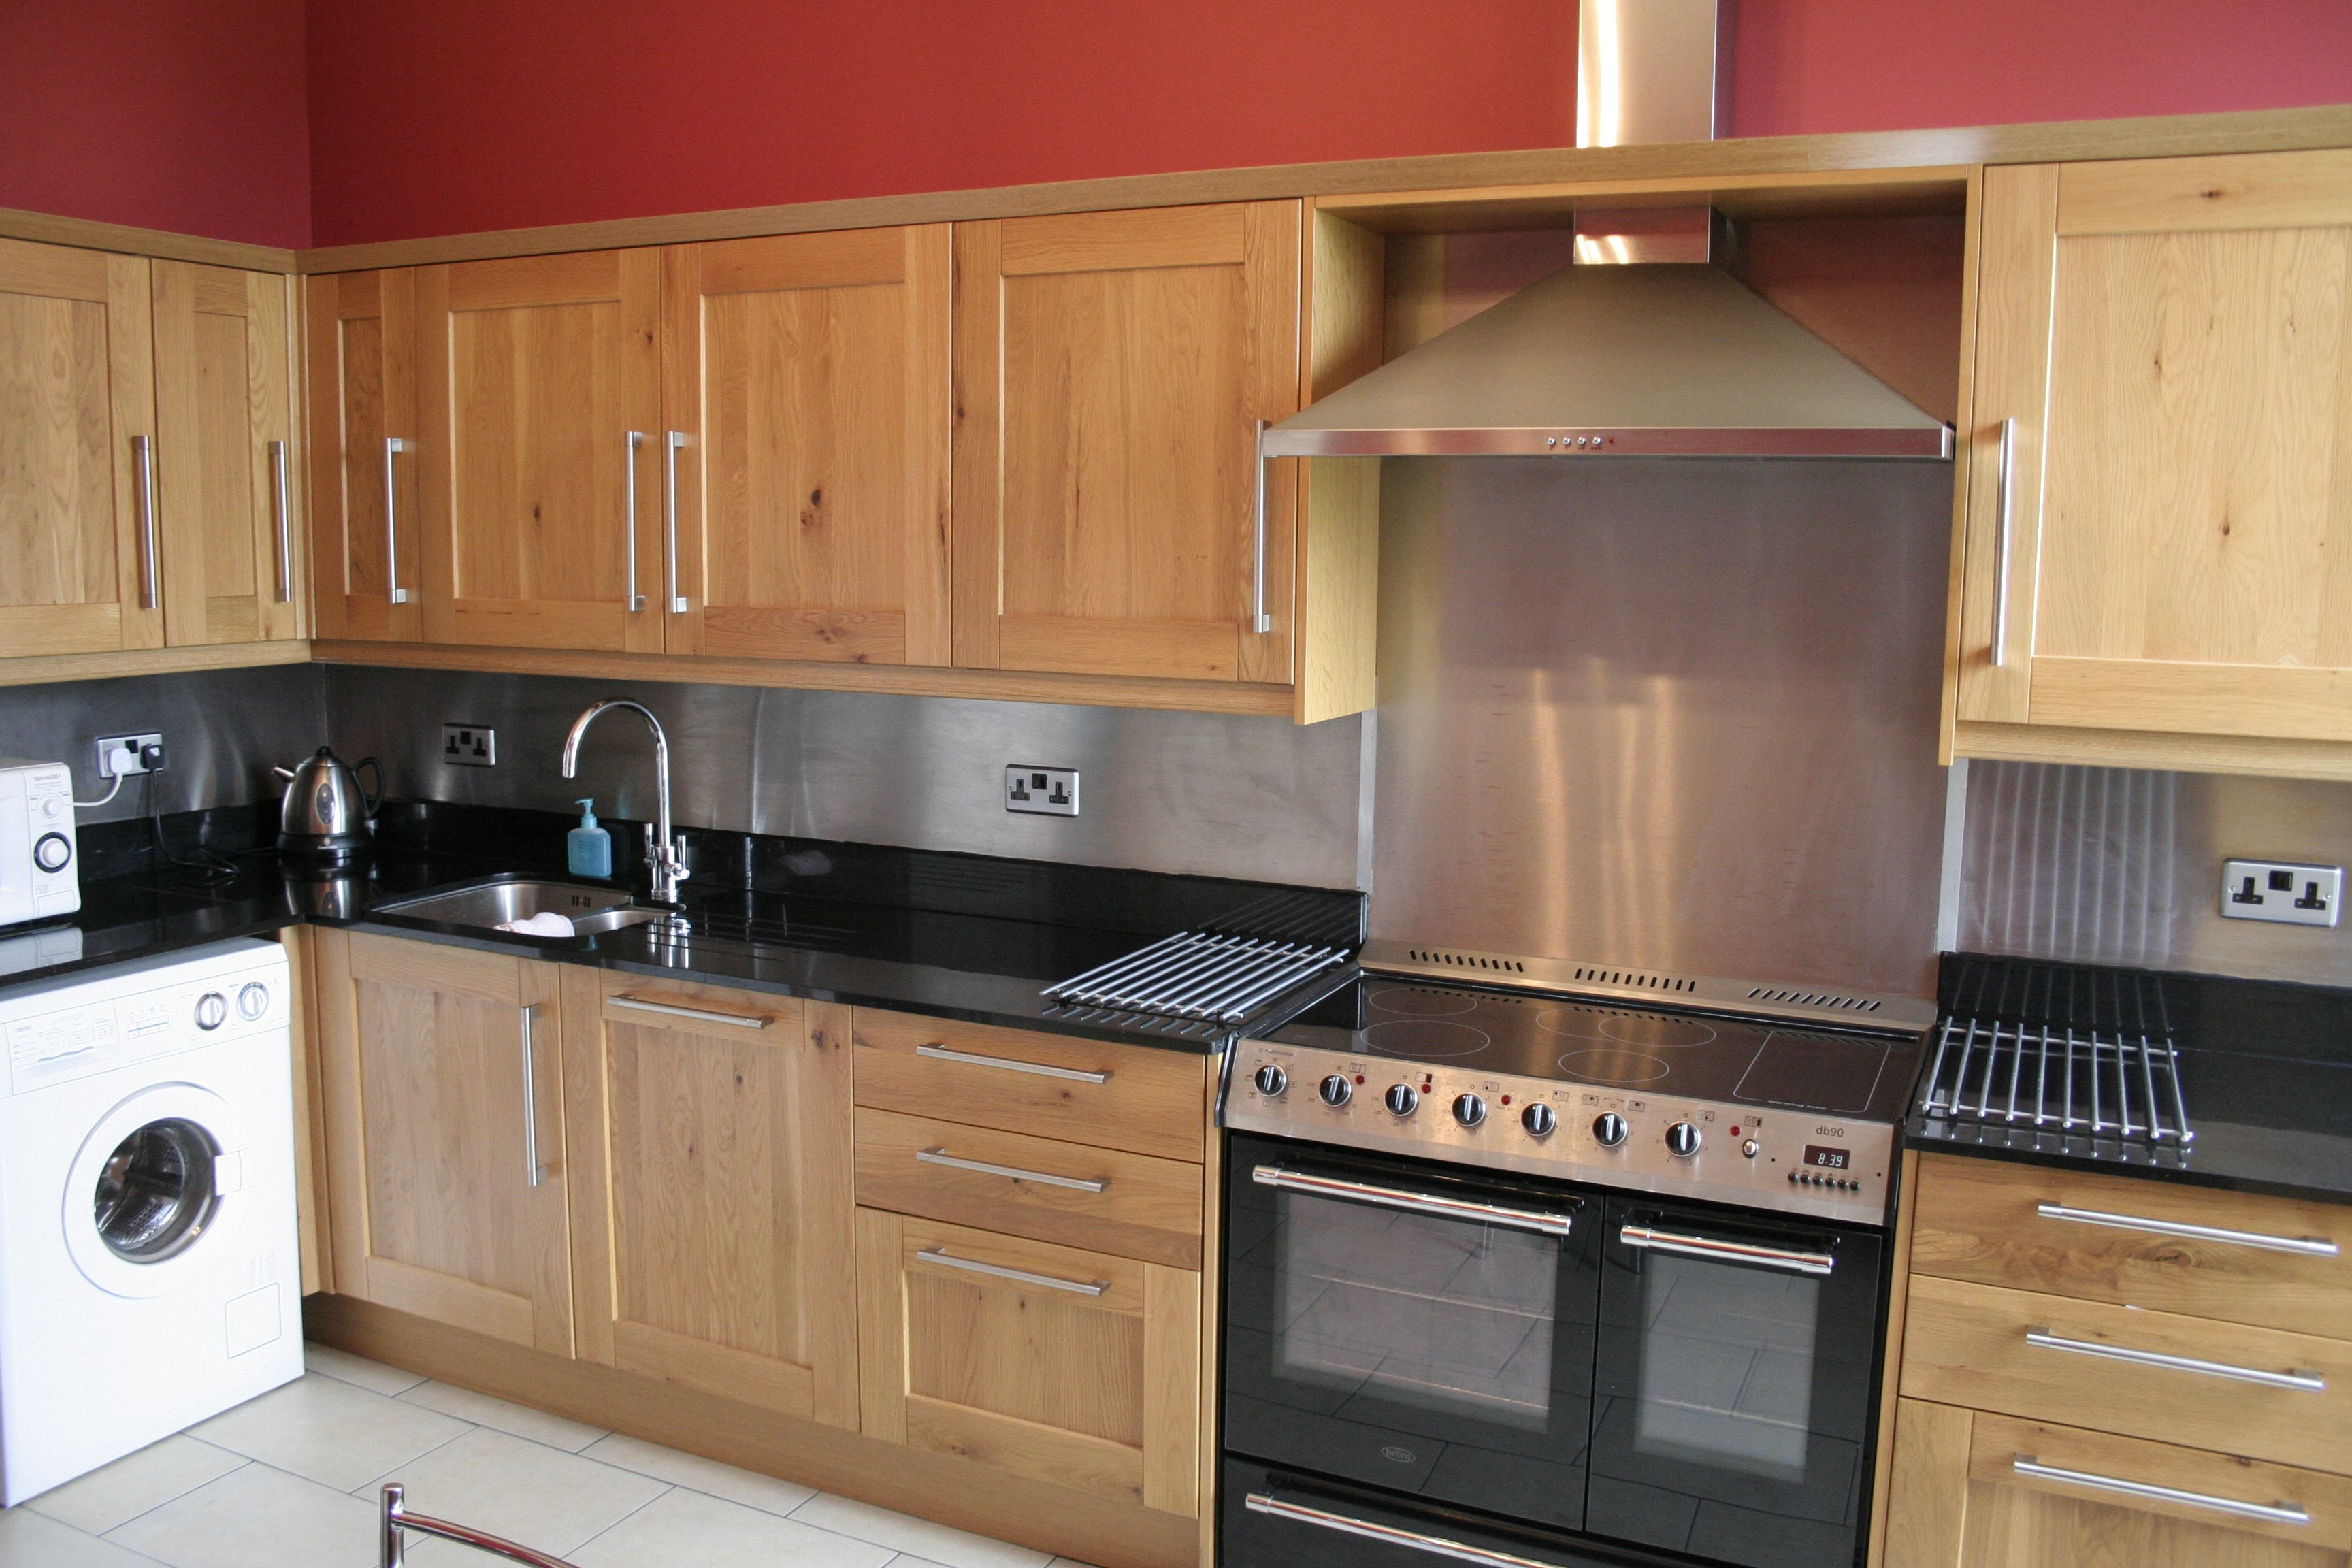 Red Kitchen With Stainless Steel Backsplash And Appliances